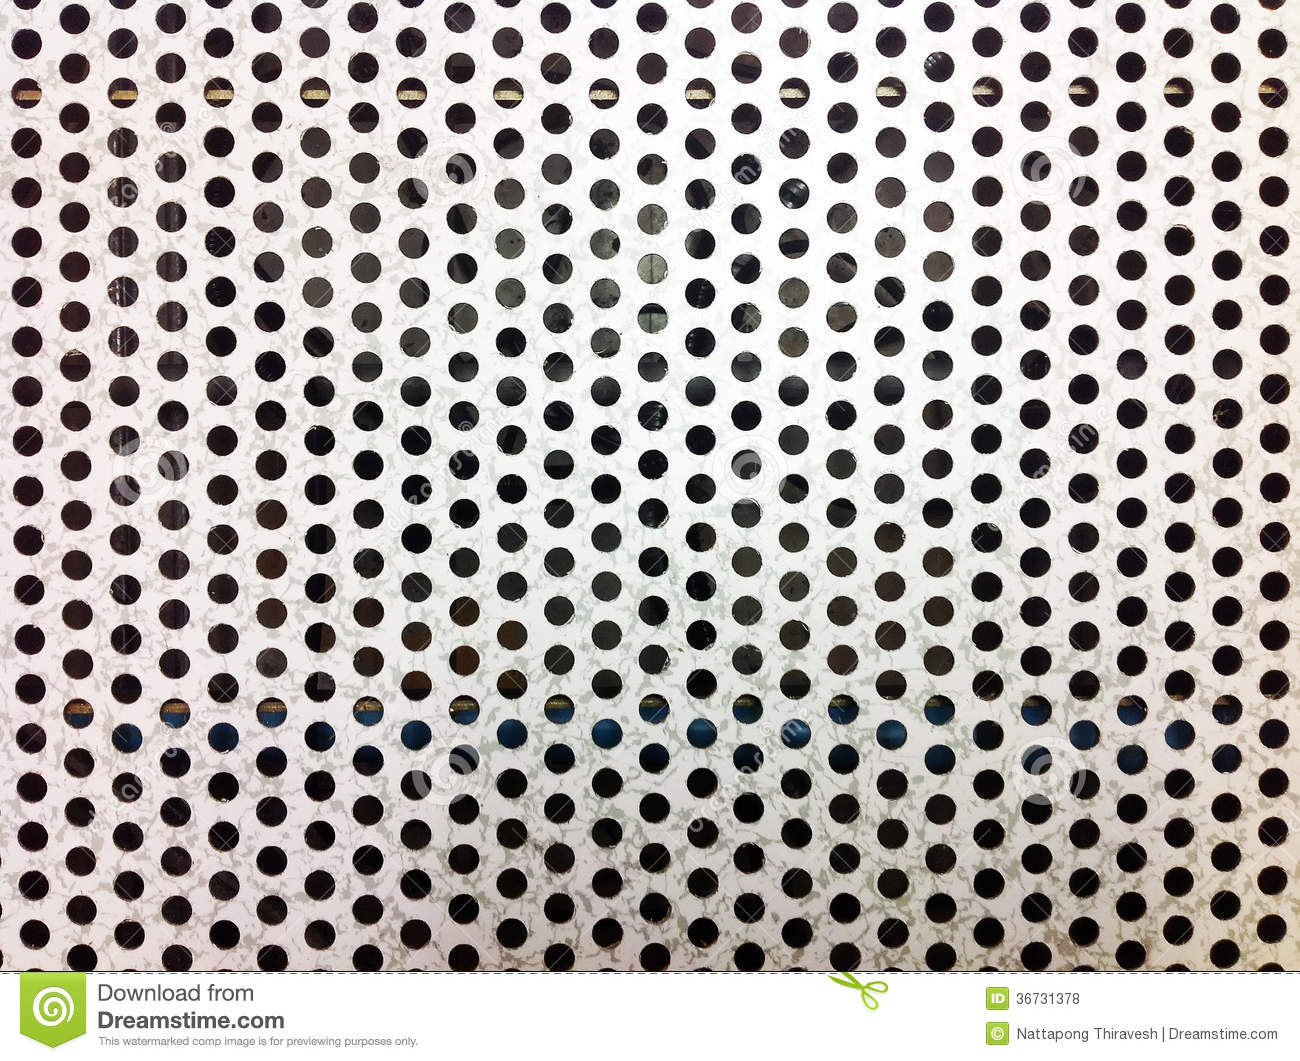 Floor Perforated Tiles Server Rooms : Perforated airflow panels royalty free stock photos